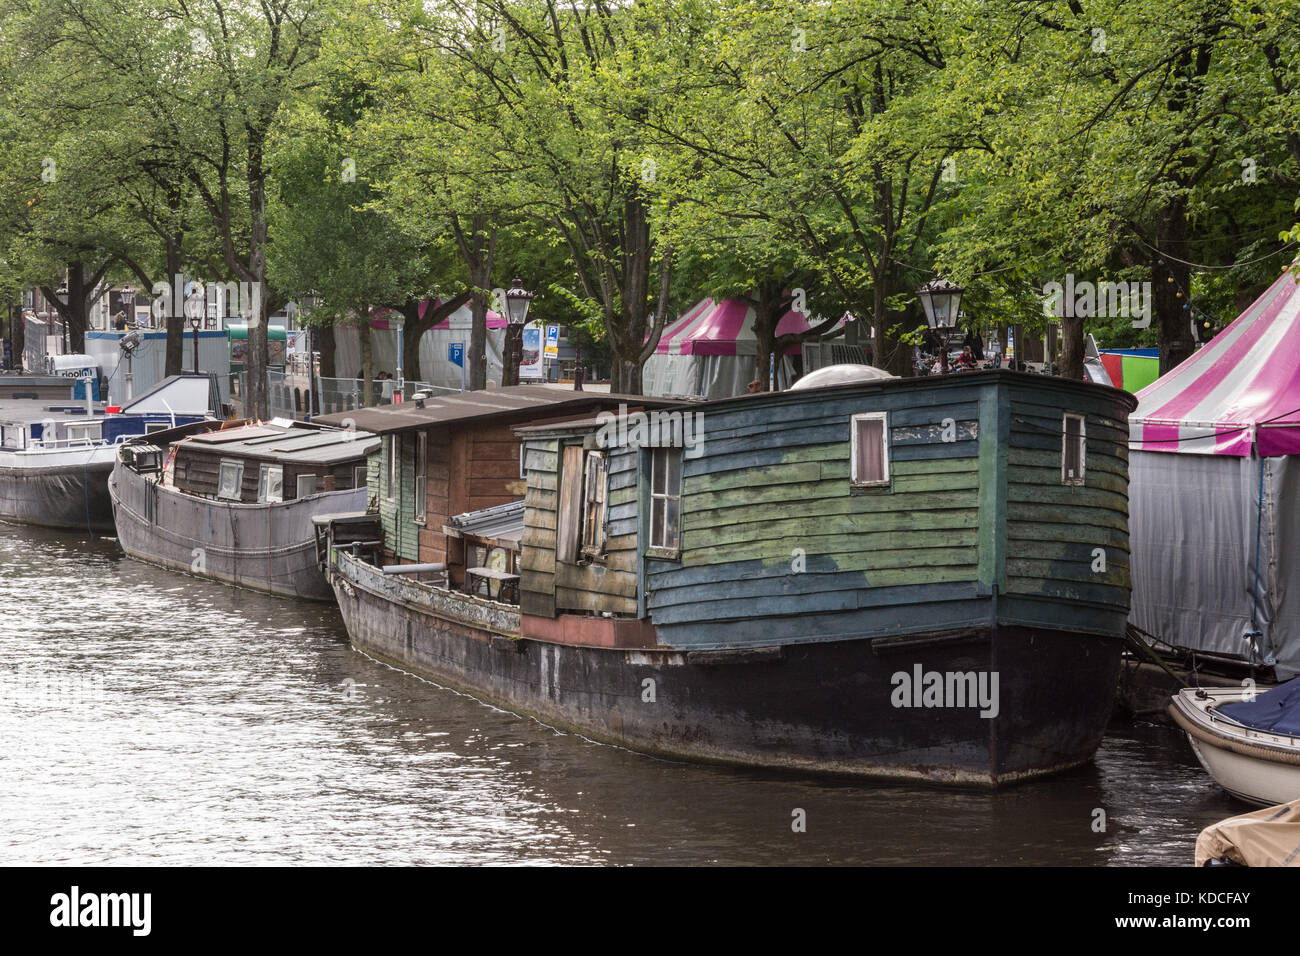 Mobles Sade Canals - Characterful Stock Photos Characterful Stock Images Alamy[mjhdah]https://www.artsalliancemedia.com/hubfs/Stock%20images/canal-2989865_1920.jpg?t=1522077954049